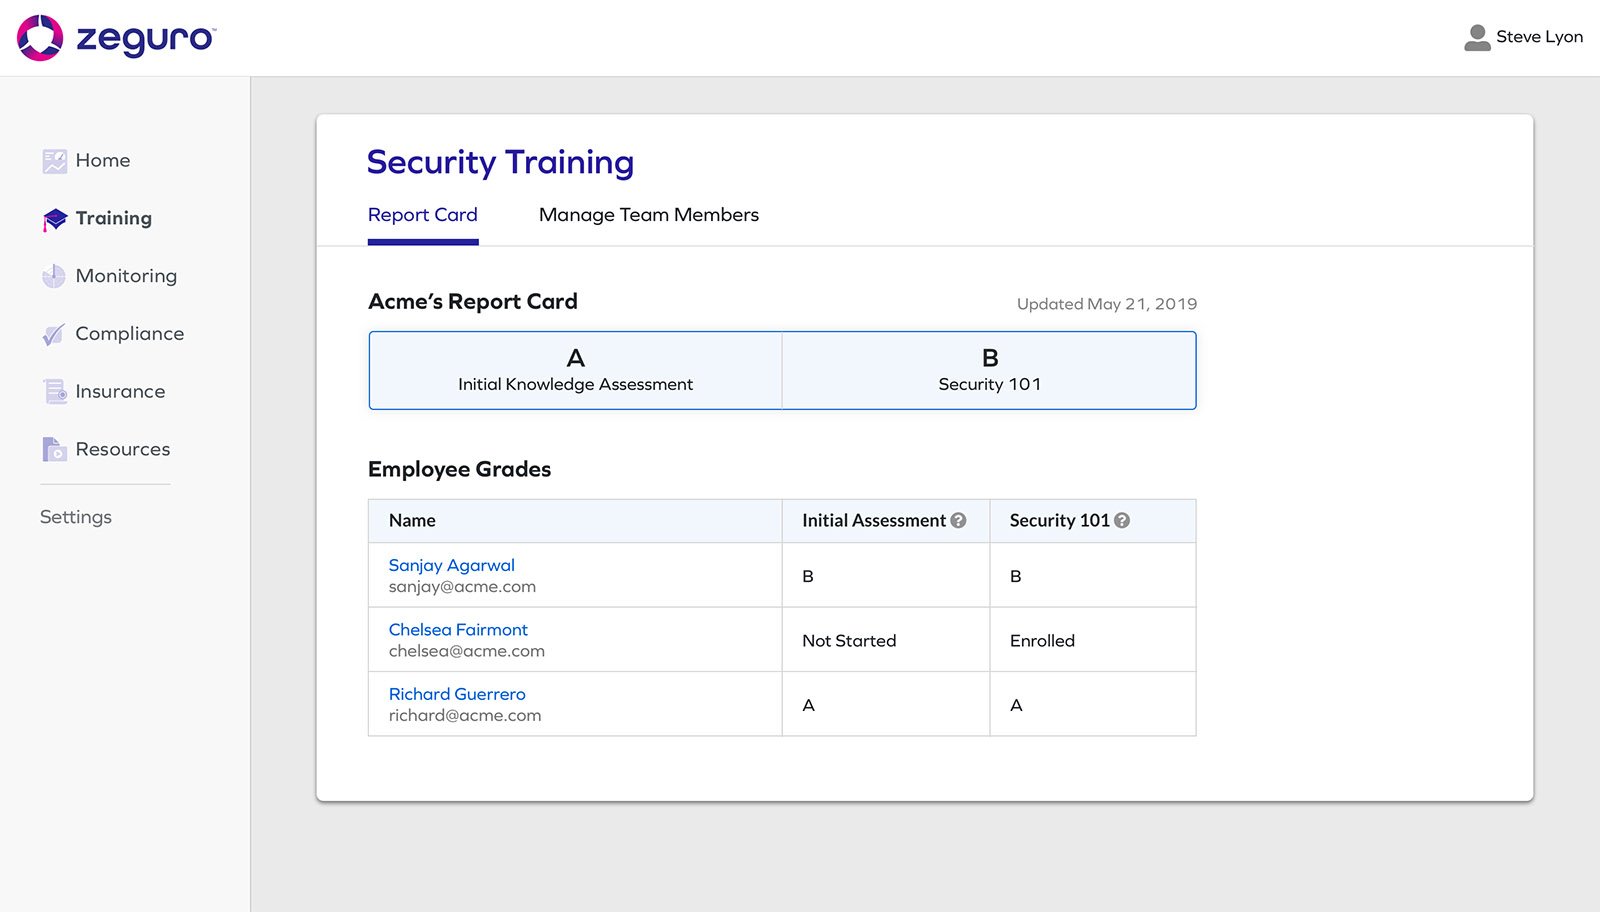 Screenshot from Zeguro platform to show Training screen